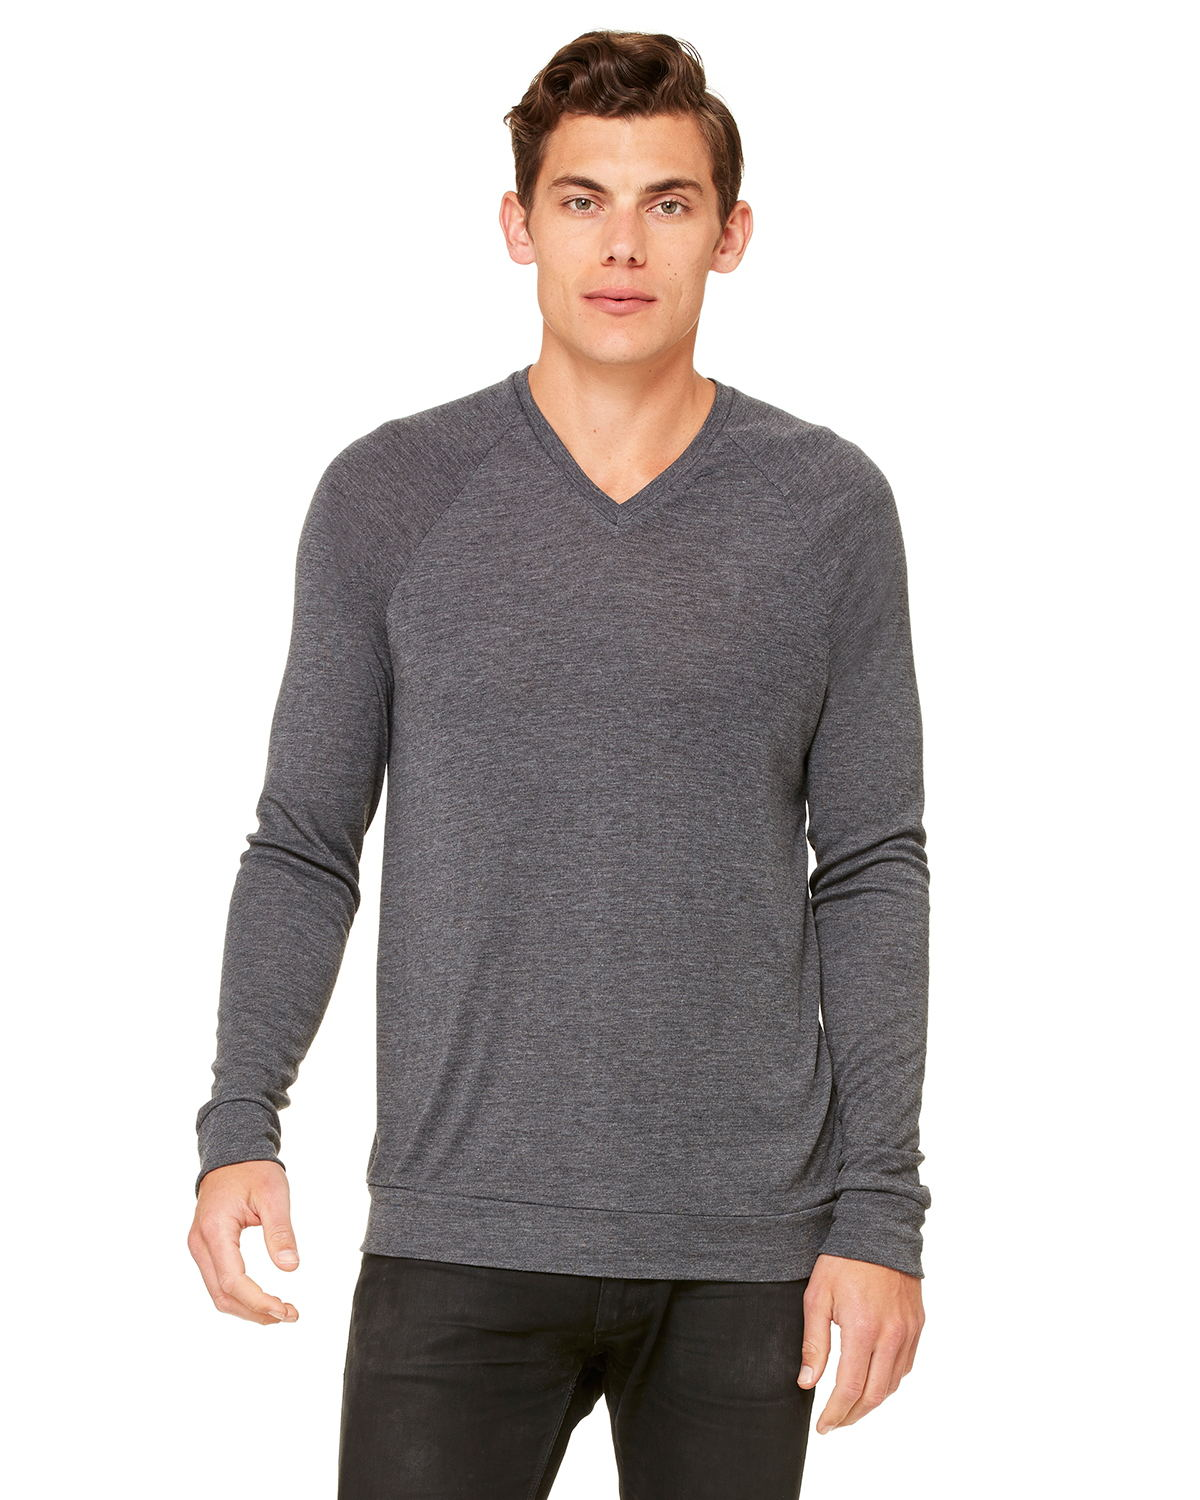 Canvas Unisex Pullover Raglan V-Neck Lightweight Sweater - 3985